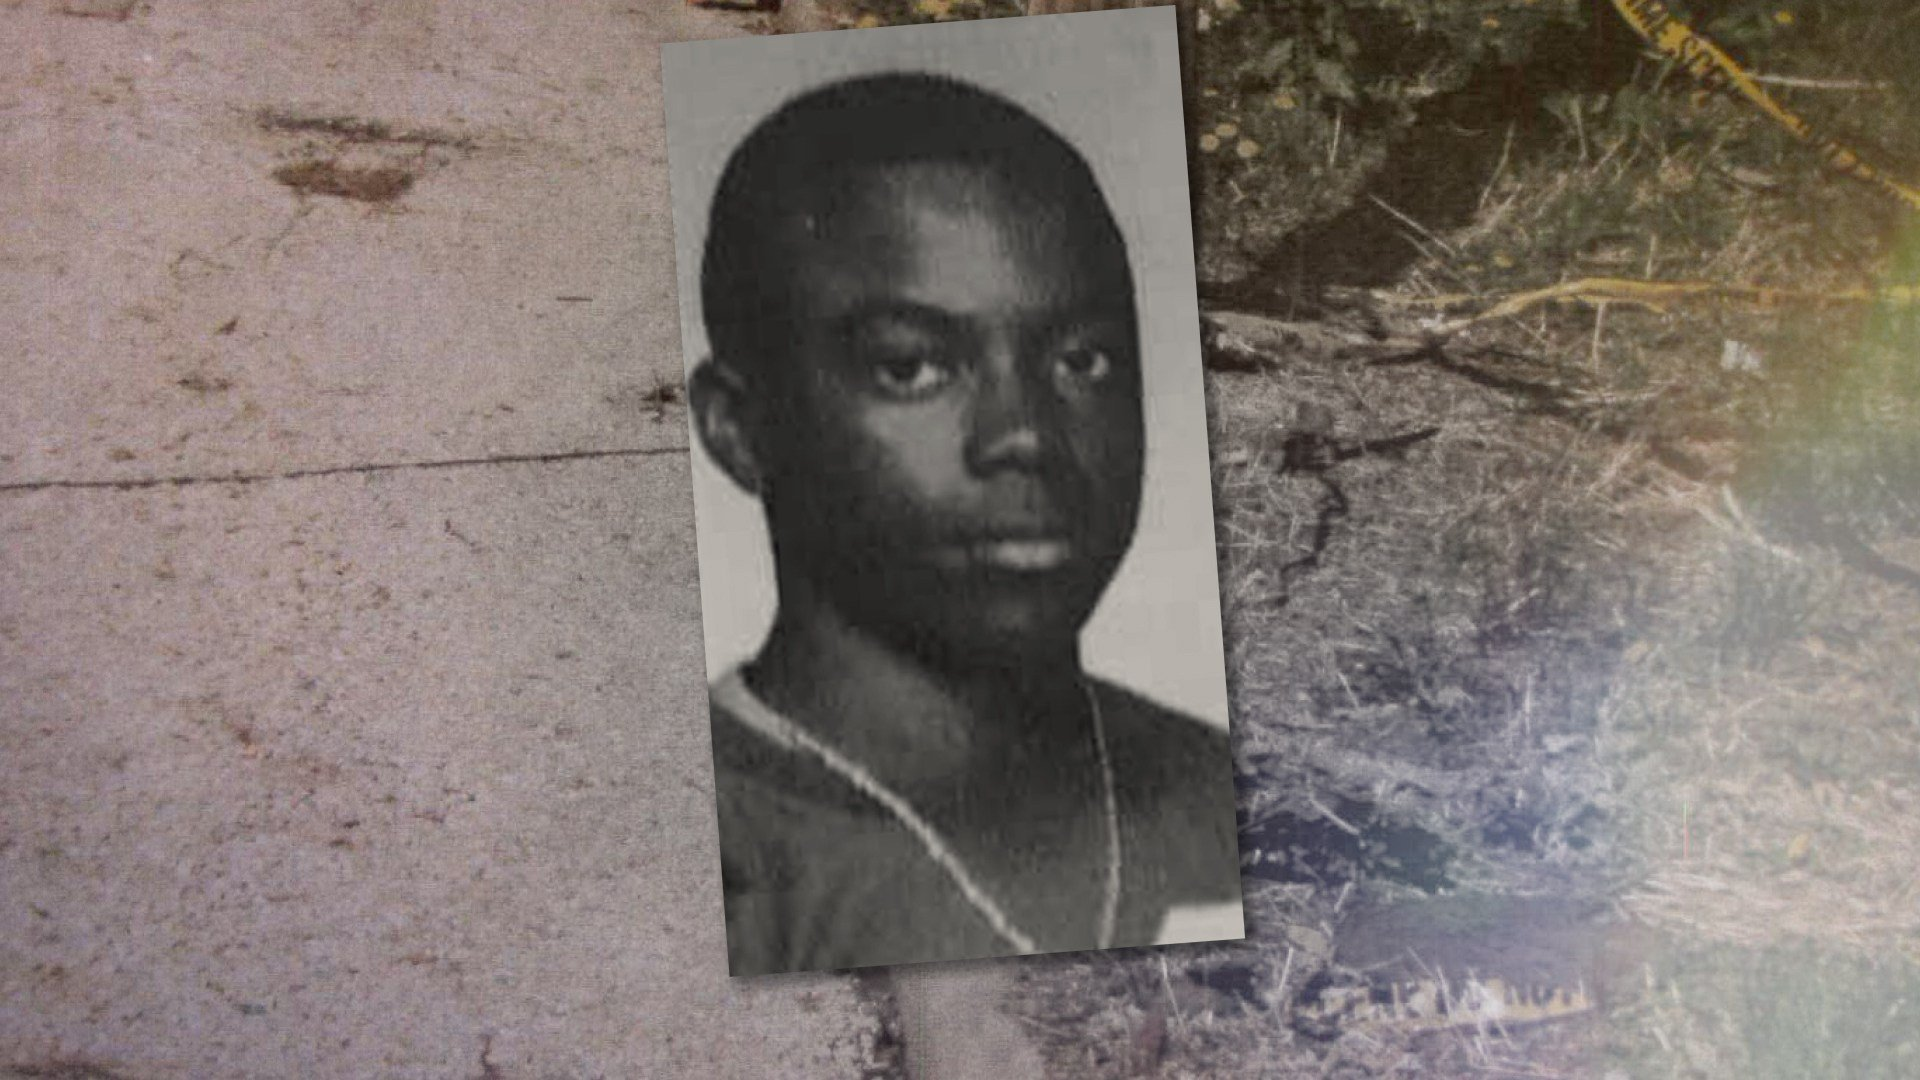 Doniel Quinn was killed on April 15, 1994, when a killer, armed with a shotgun, sneaked down a hill and unloaded on two people who were sitting in a power blue Cadillac. (KCTV5)